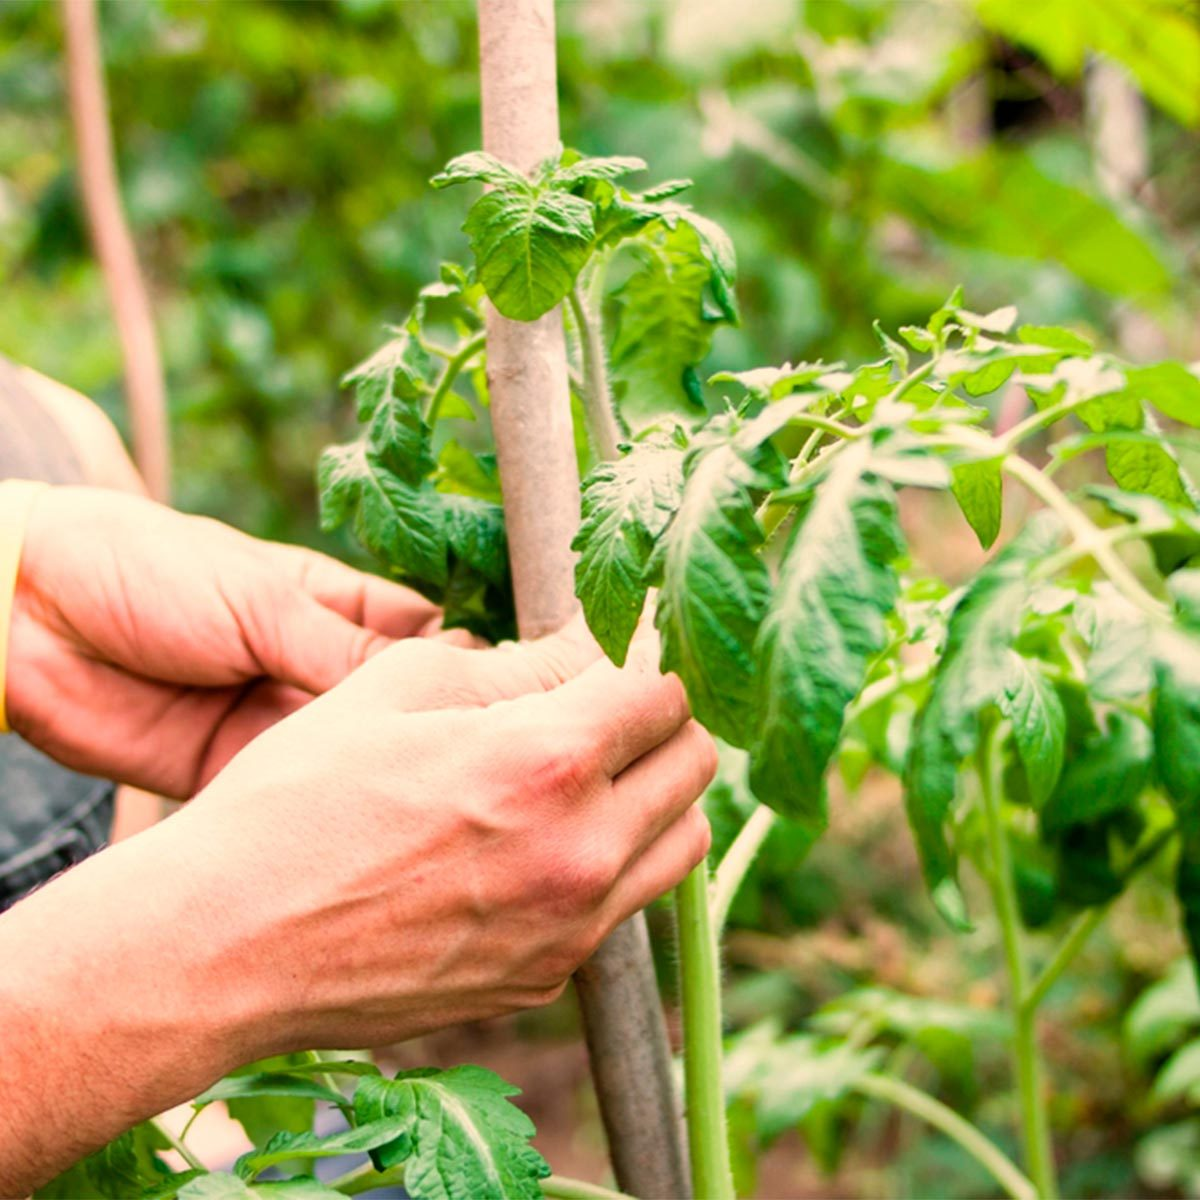 tying plants to support with floss